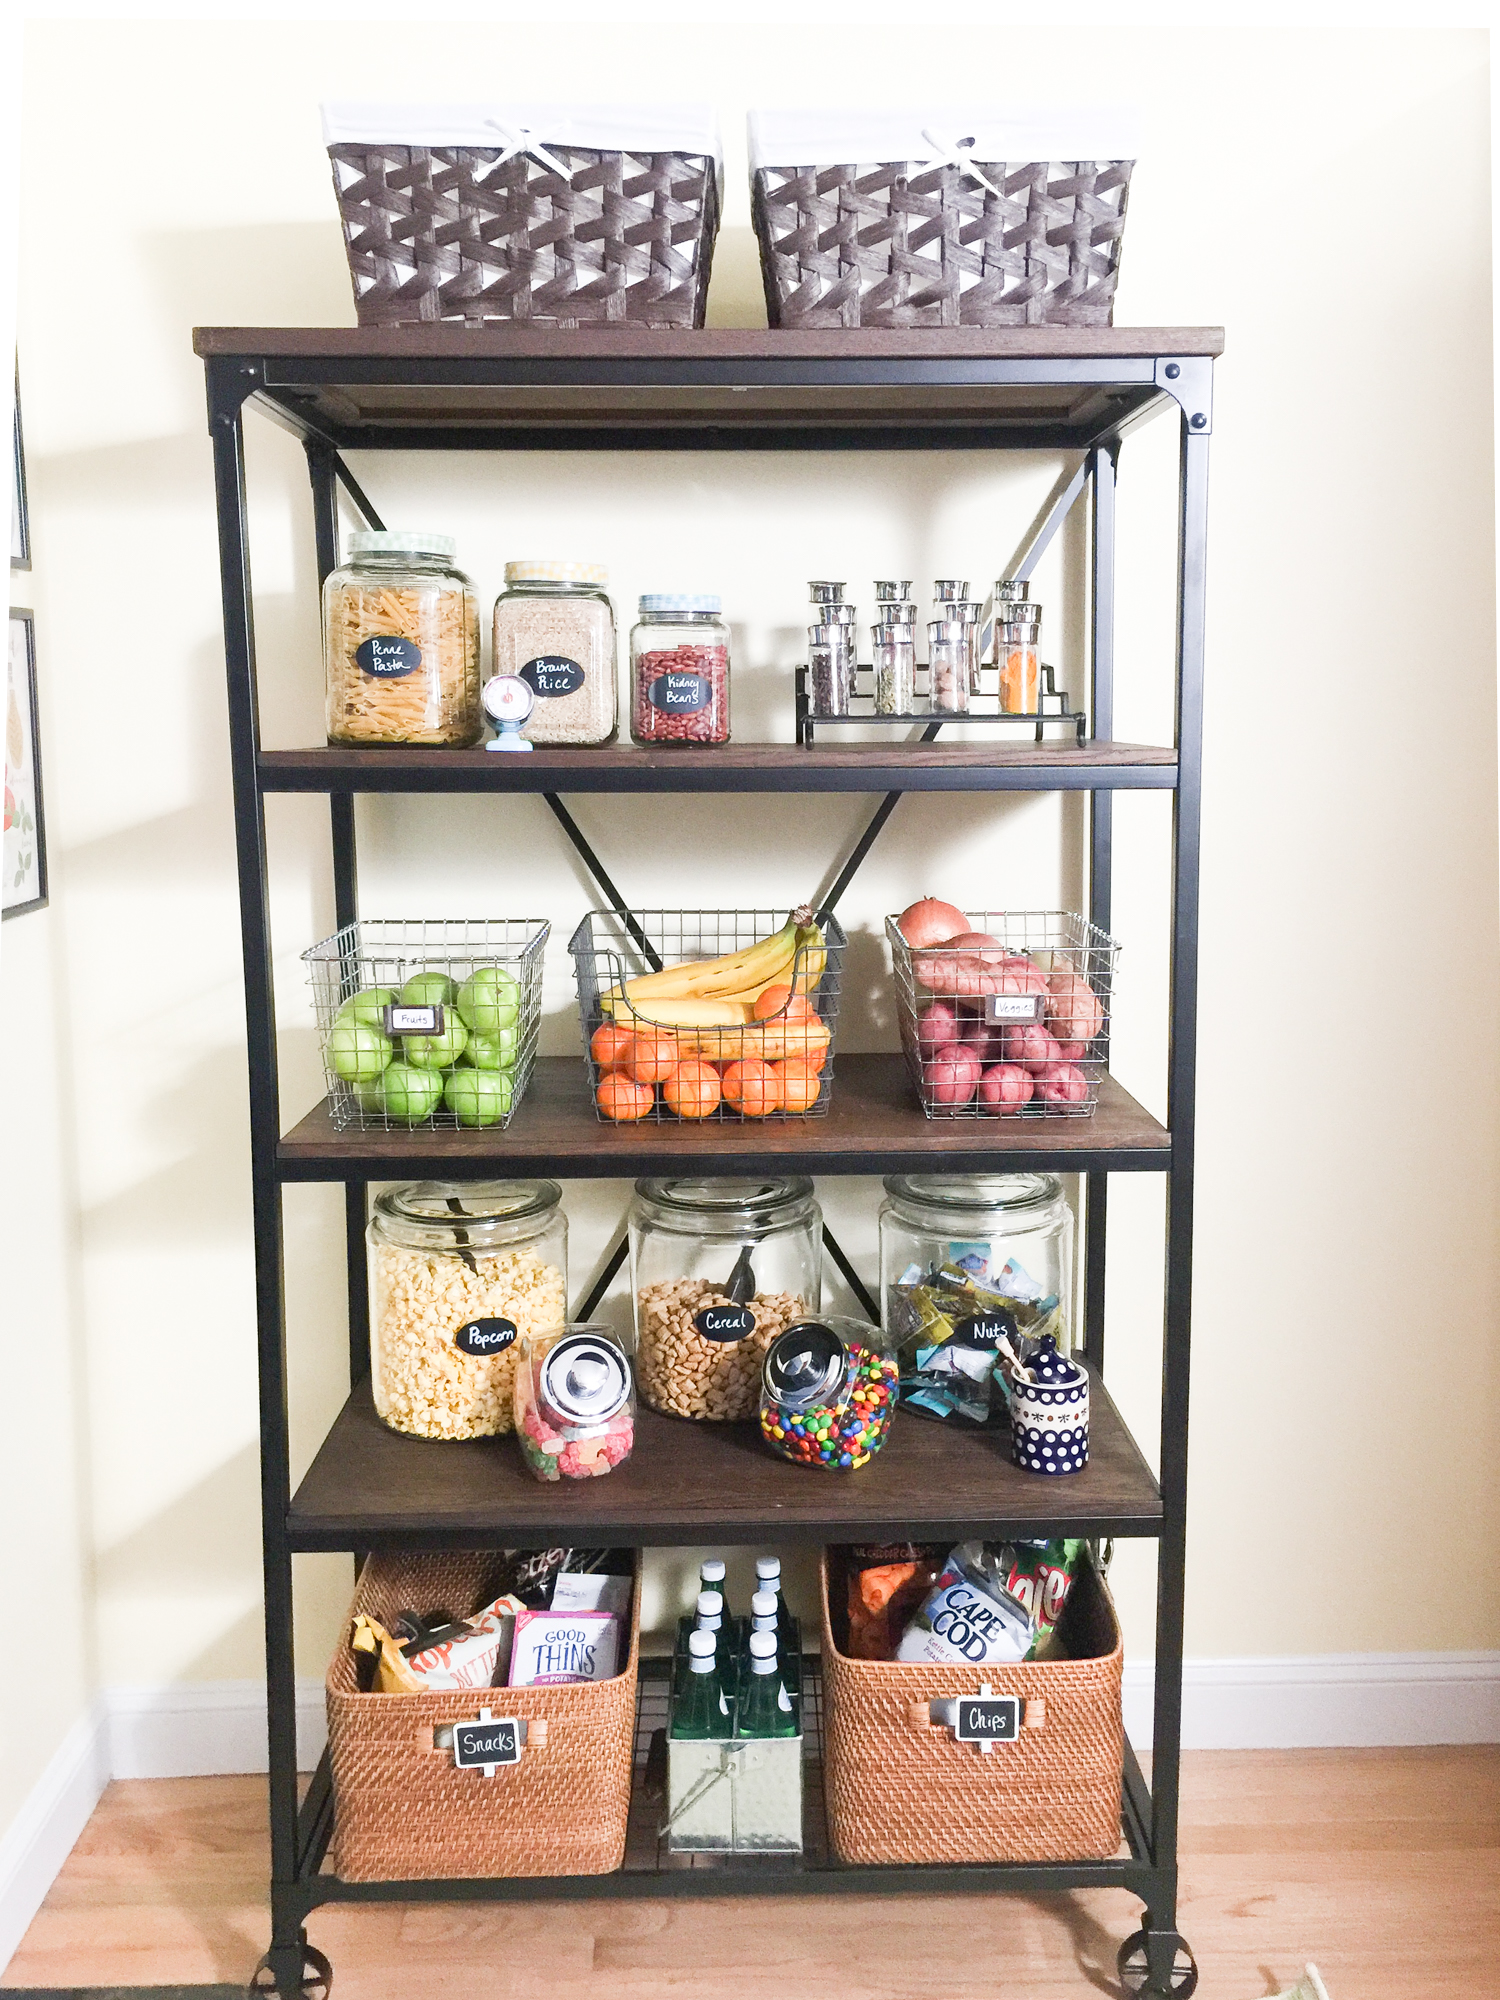 If You Have A Blank Wall Space Anywhere In Your Kitchen, You Can Put Some  Open Shelving Units (or Etageres) To Create More Storage Space!